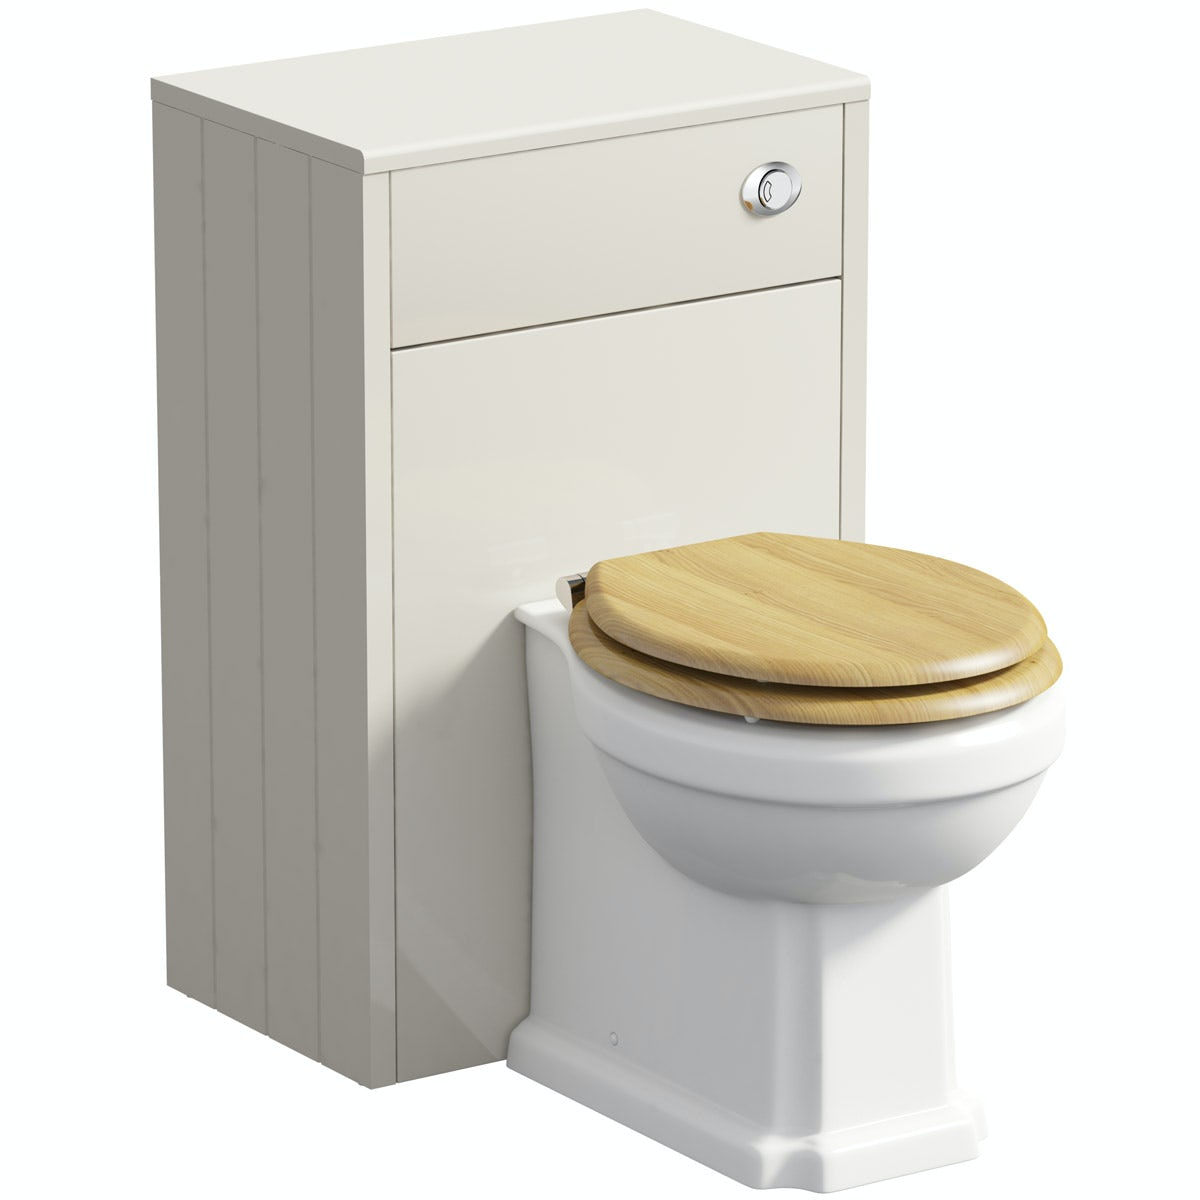 The Bath Co. Dulwich stone ivory back to wall unit and toilet with oak effect seat